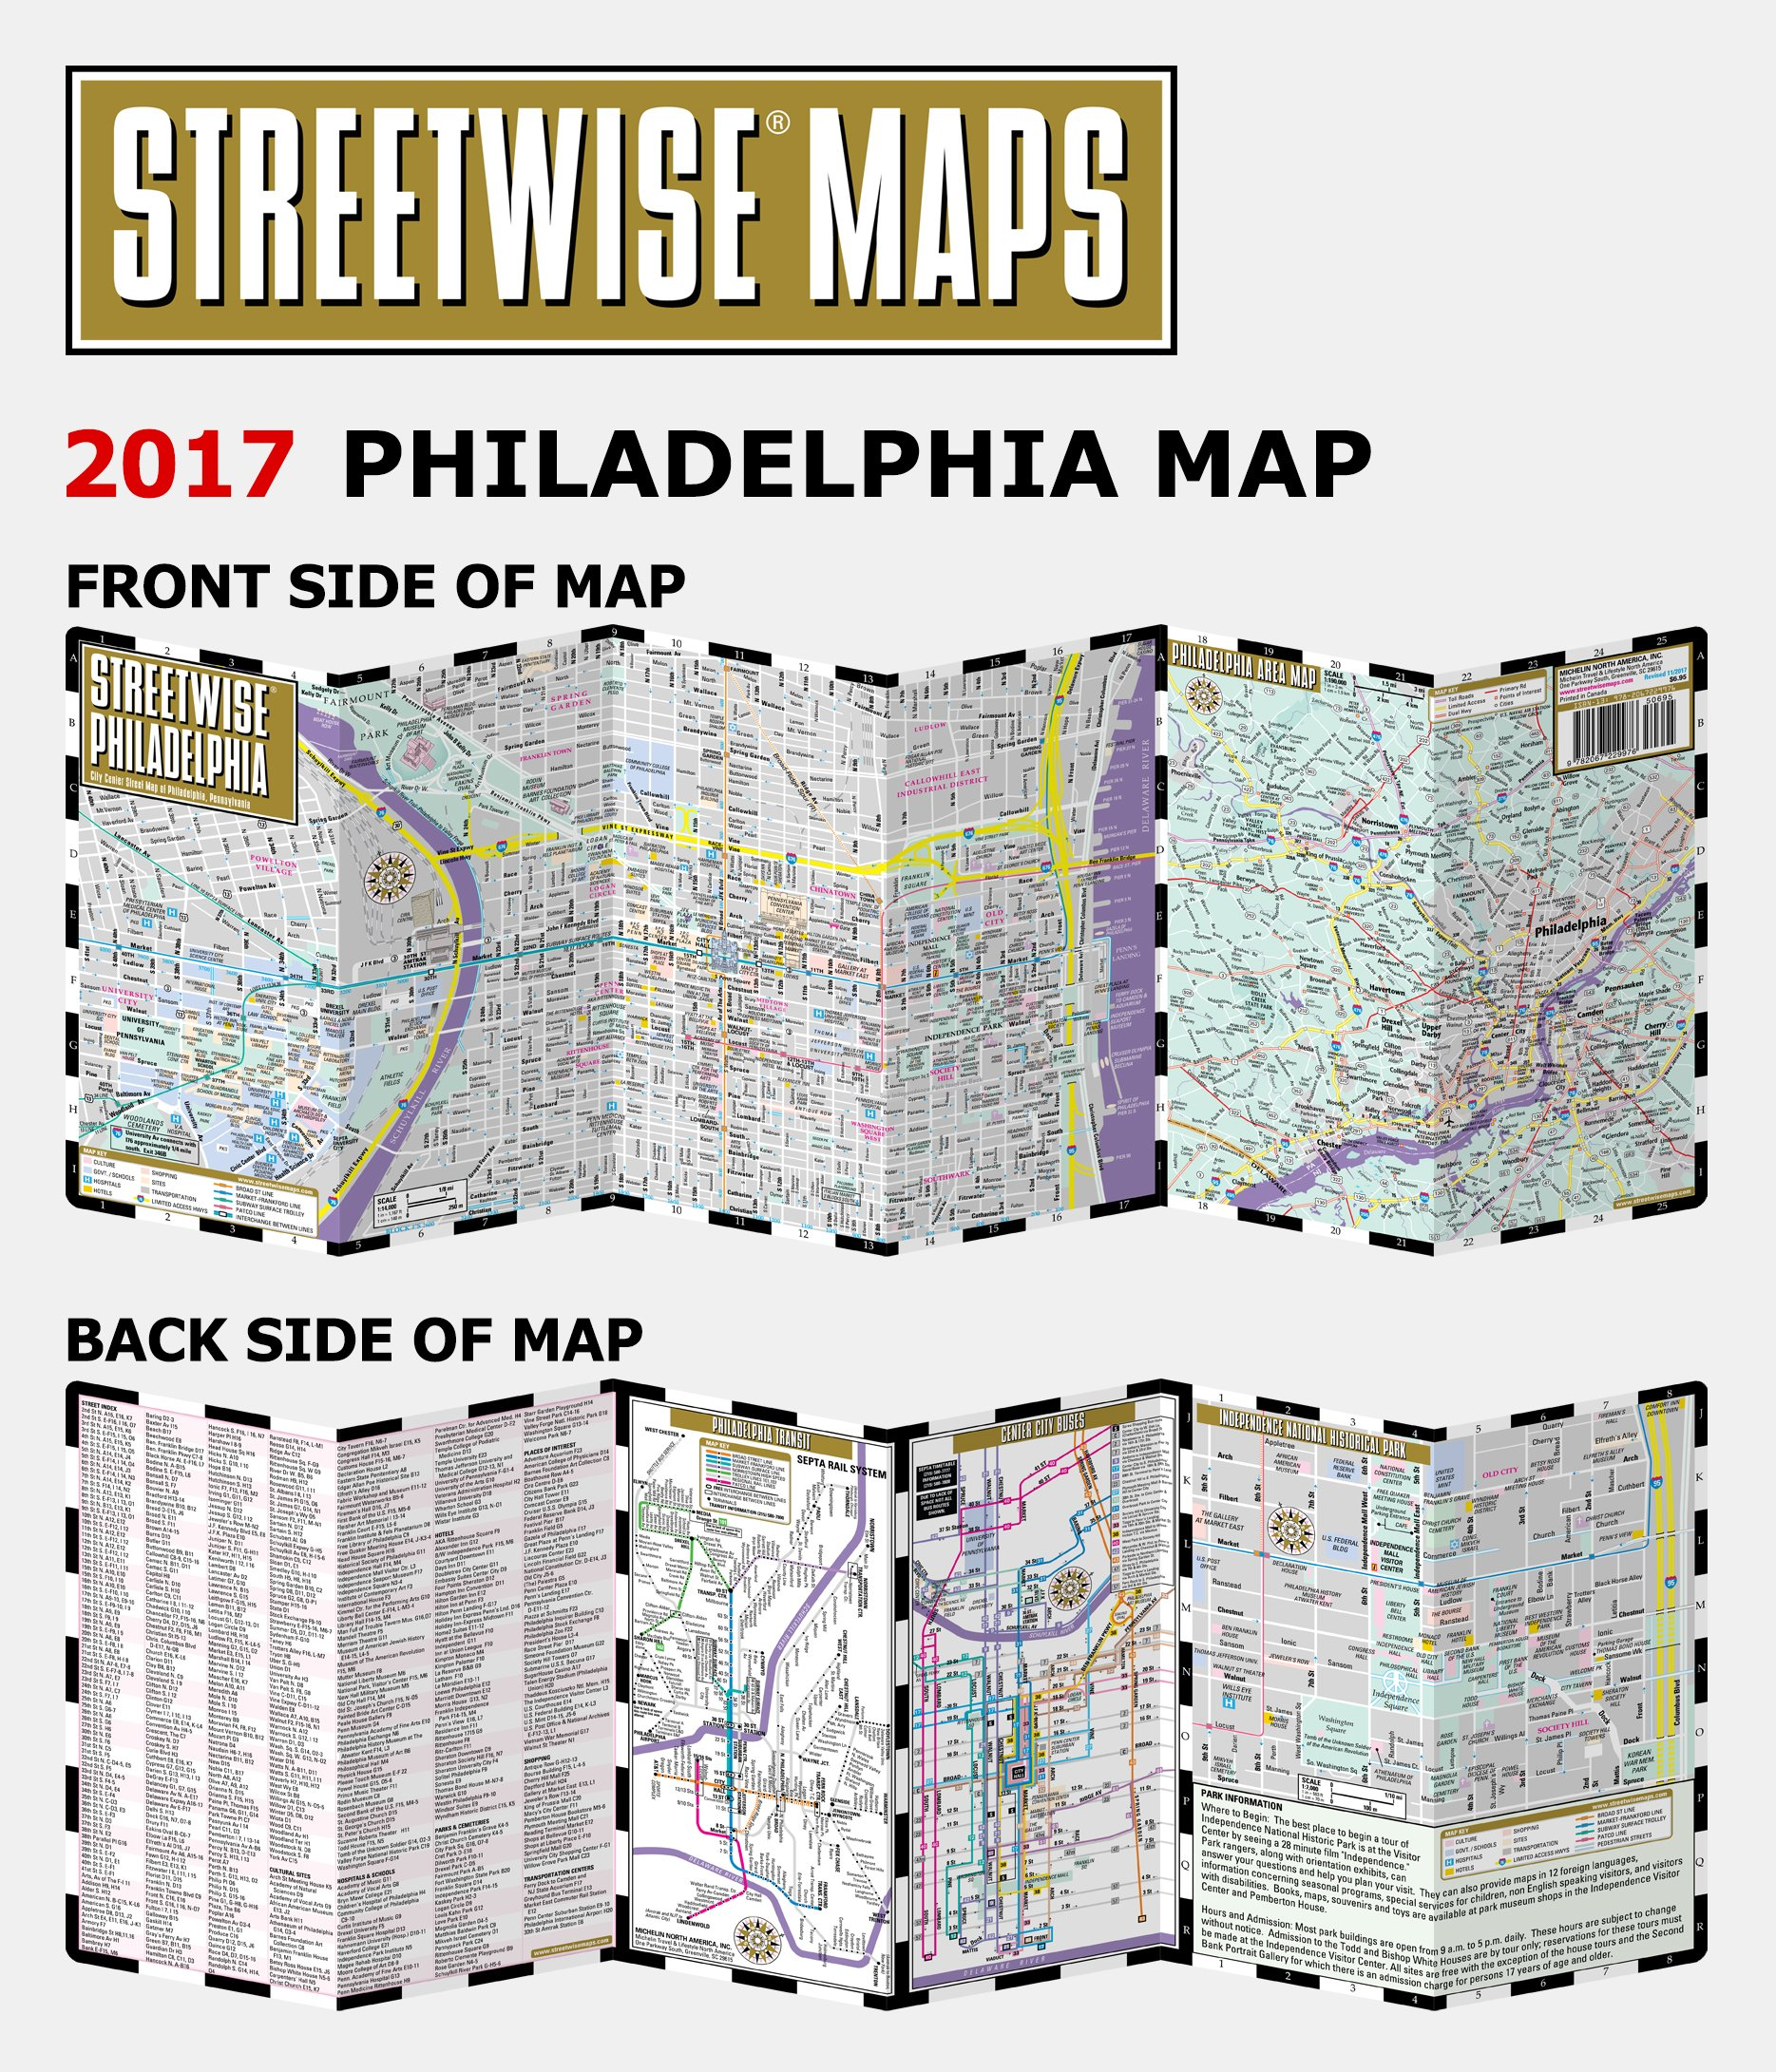 Streetwise philadelphia map laminated city center street map of streetwise philadelphia map laminated city center street map of philadelphia pennsylvania michelin streetwise maps michelin 9782067229976 sciox Images